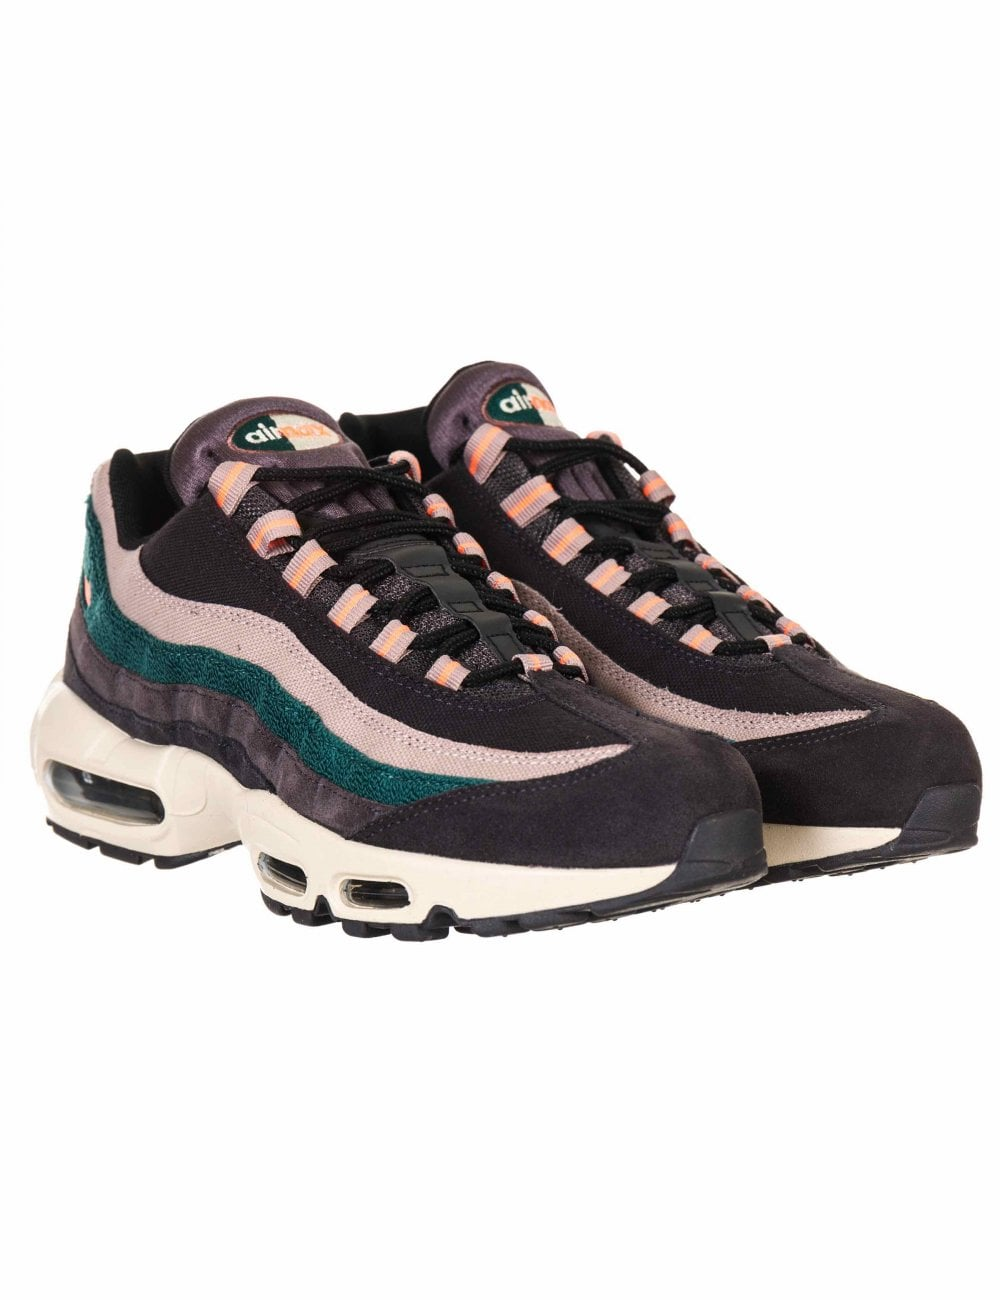 online store 3ef1f 6e9f2 Nike Air Max 95 Premium Trainers - Oil Grey Bright Mango